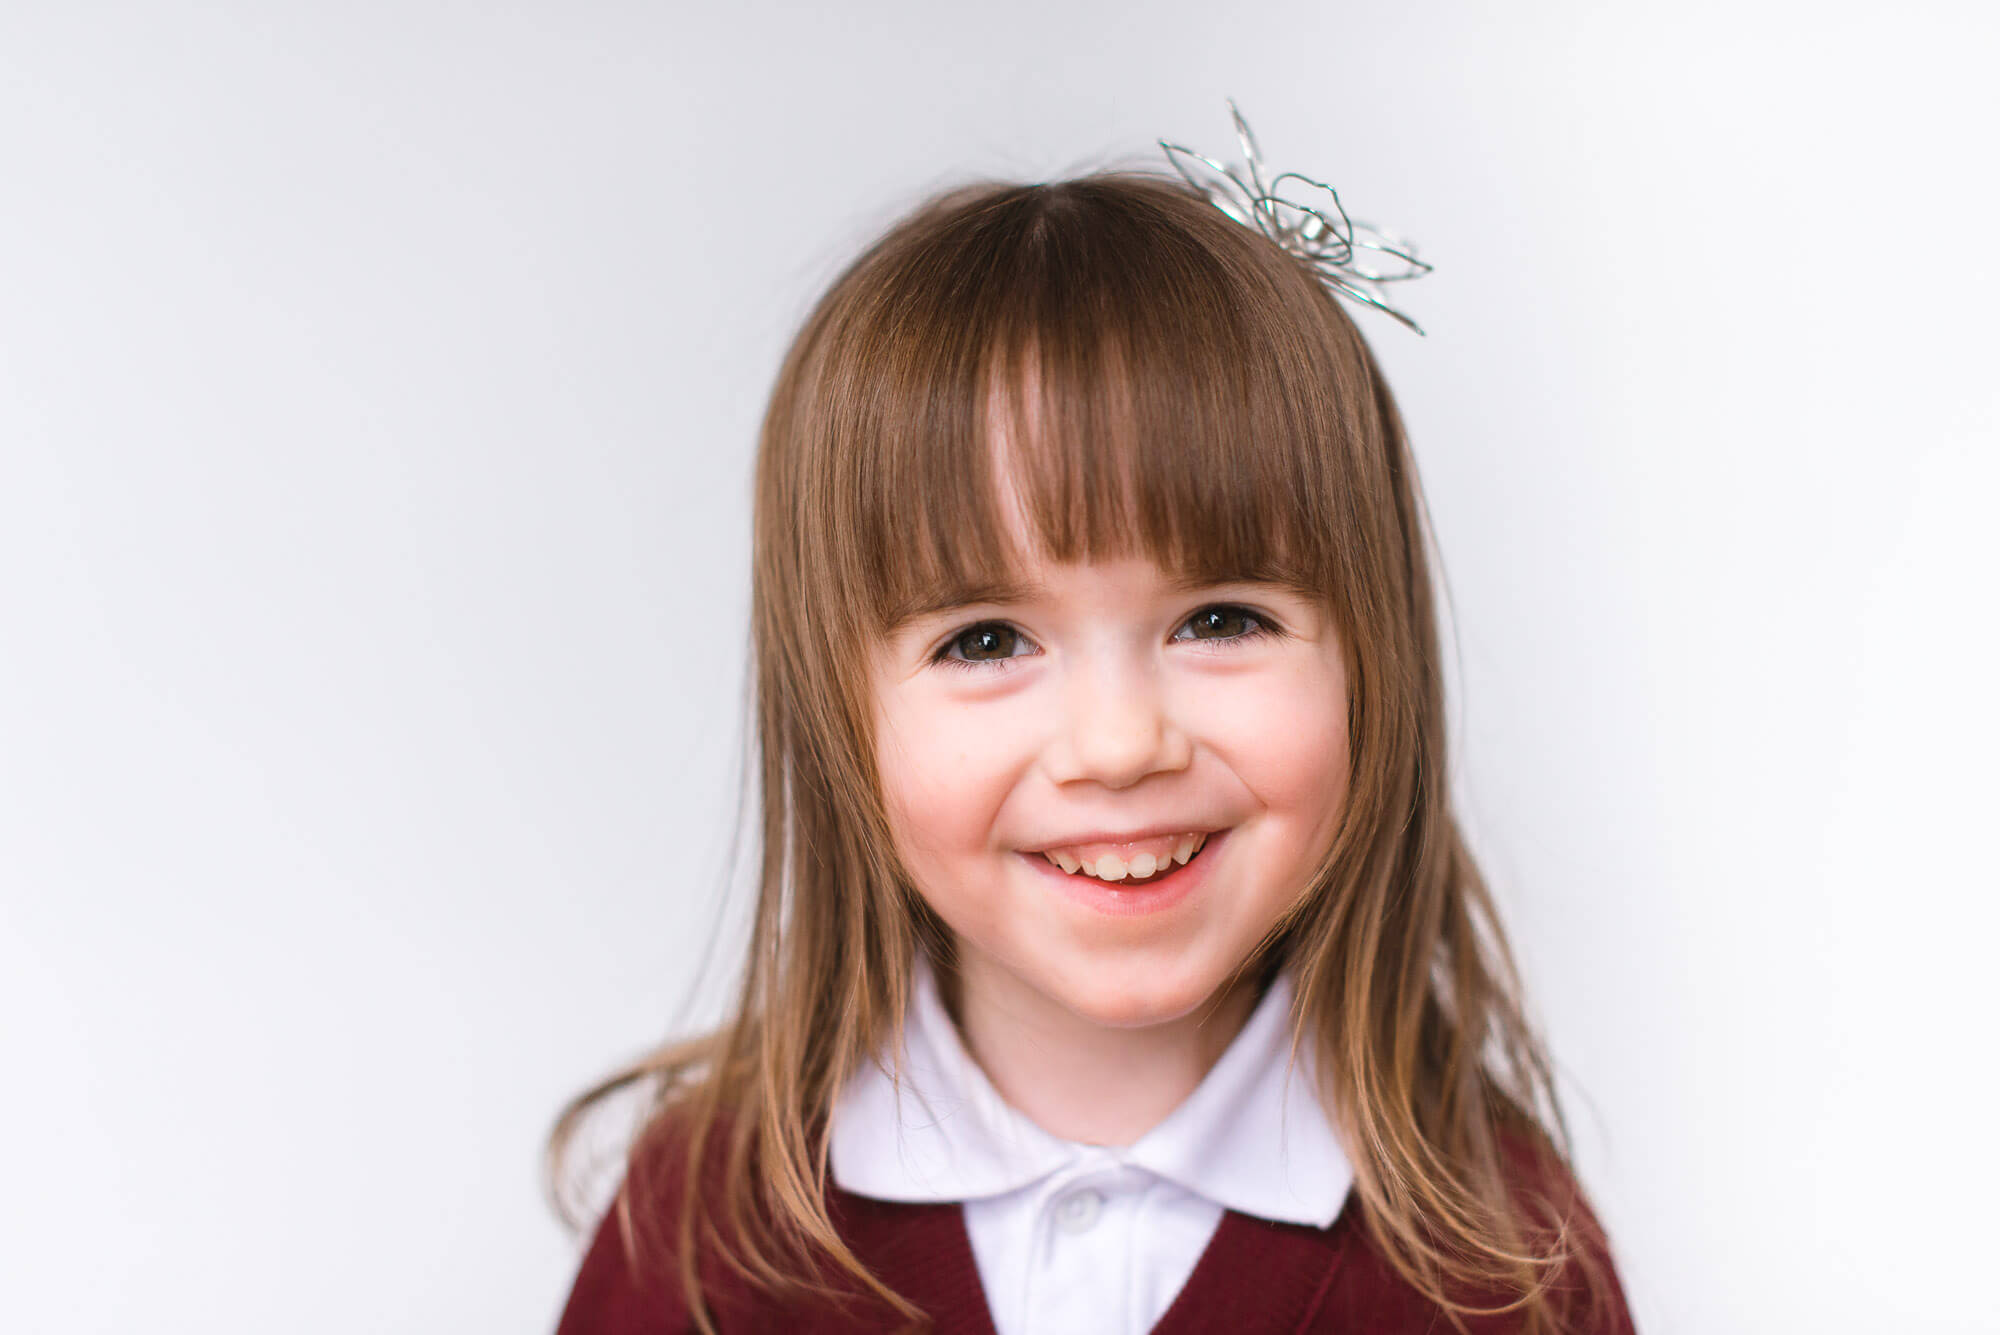 modern school photography girl with bangs